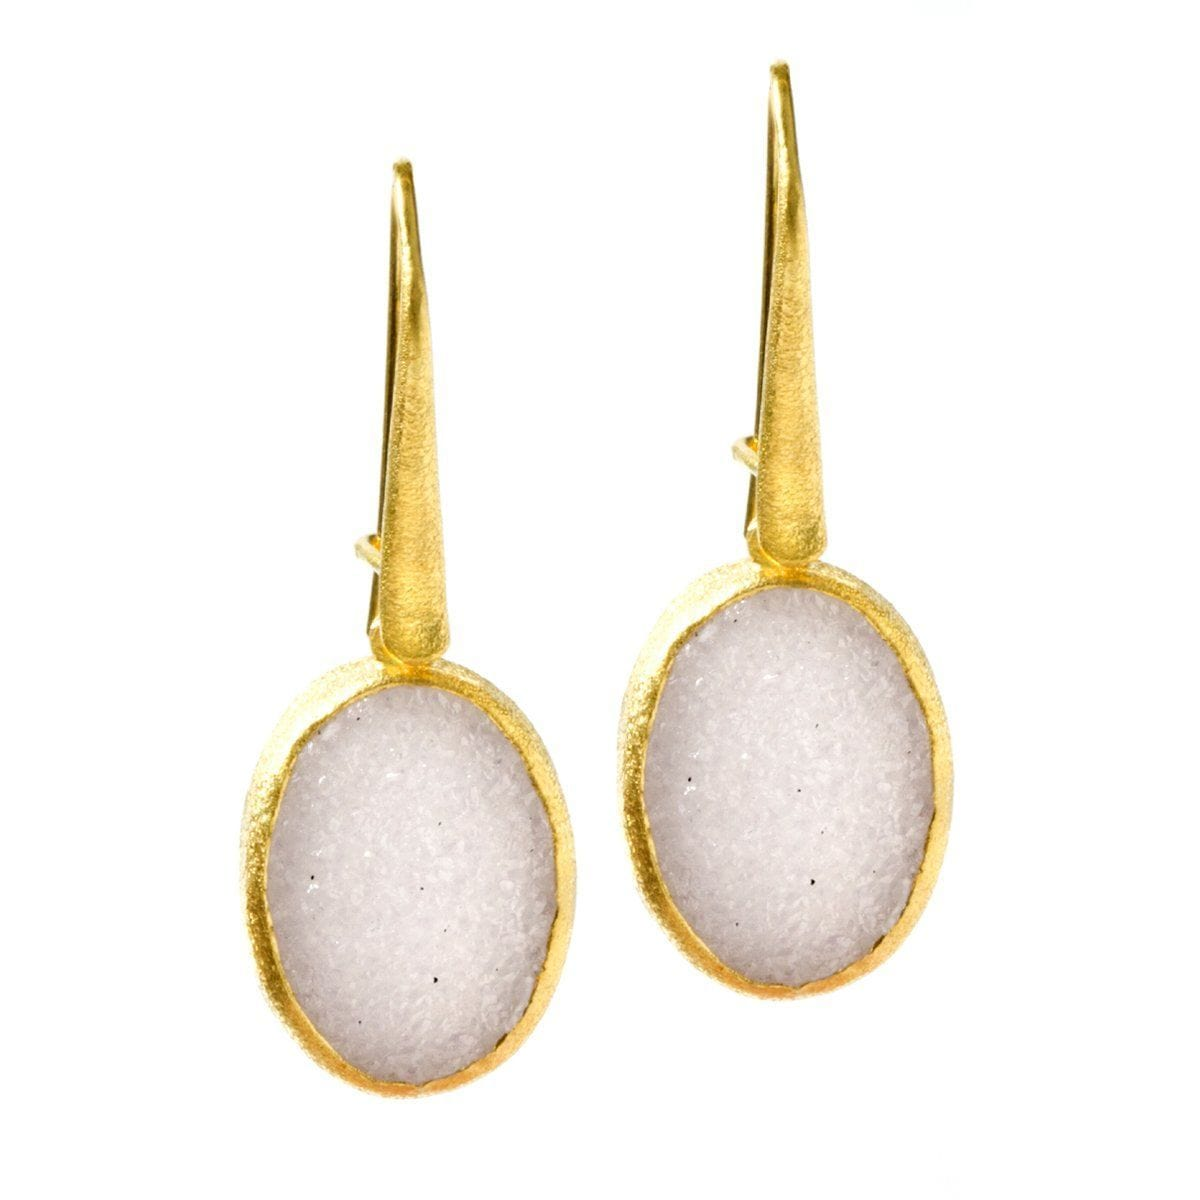 Bella 22k Gold Plated with White Druzy Earrings - G2002E-WHT-Nina Nguyen-Renee Taylor Gallery